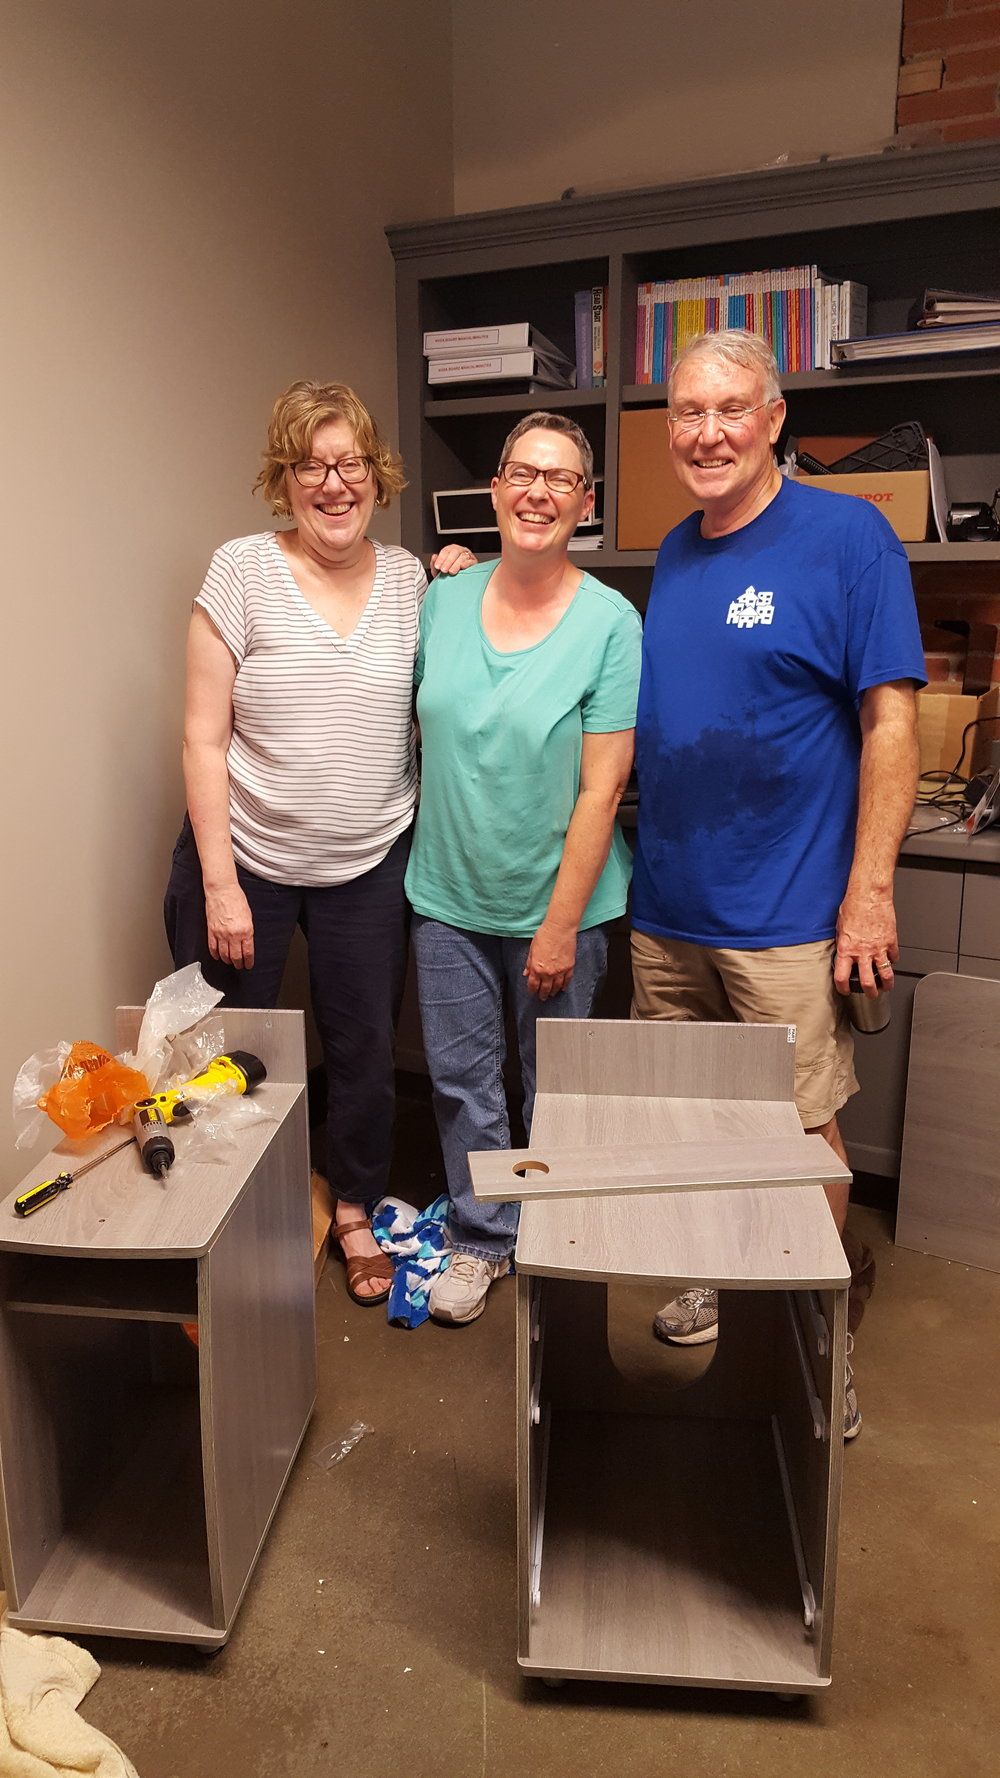 Building our new desks.  From left to right: Claudia, Karen, and Randy.  (pardon the sweaty look--we dripped buckets)